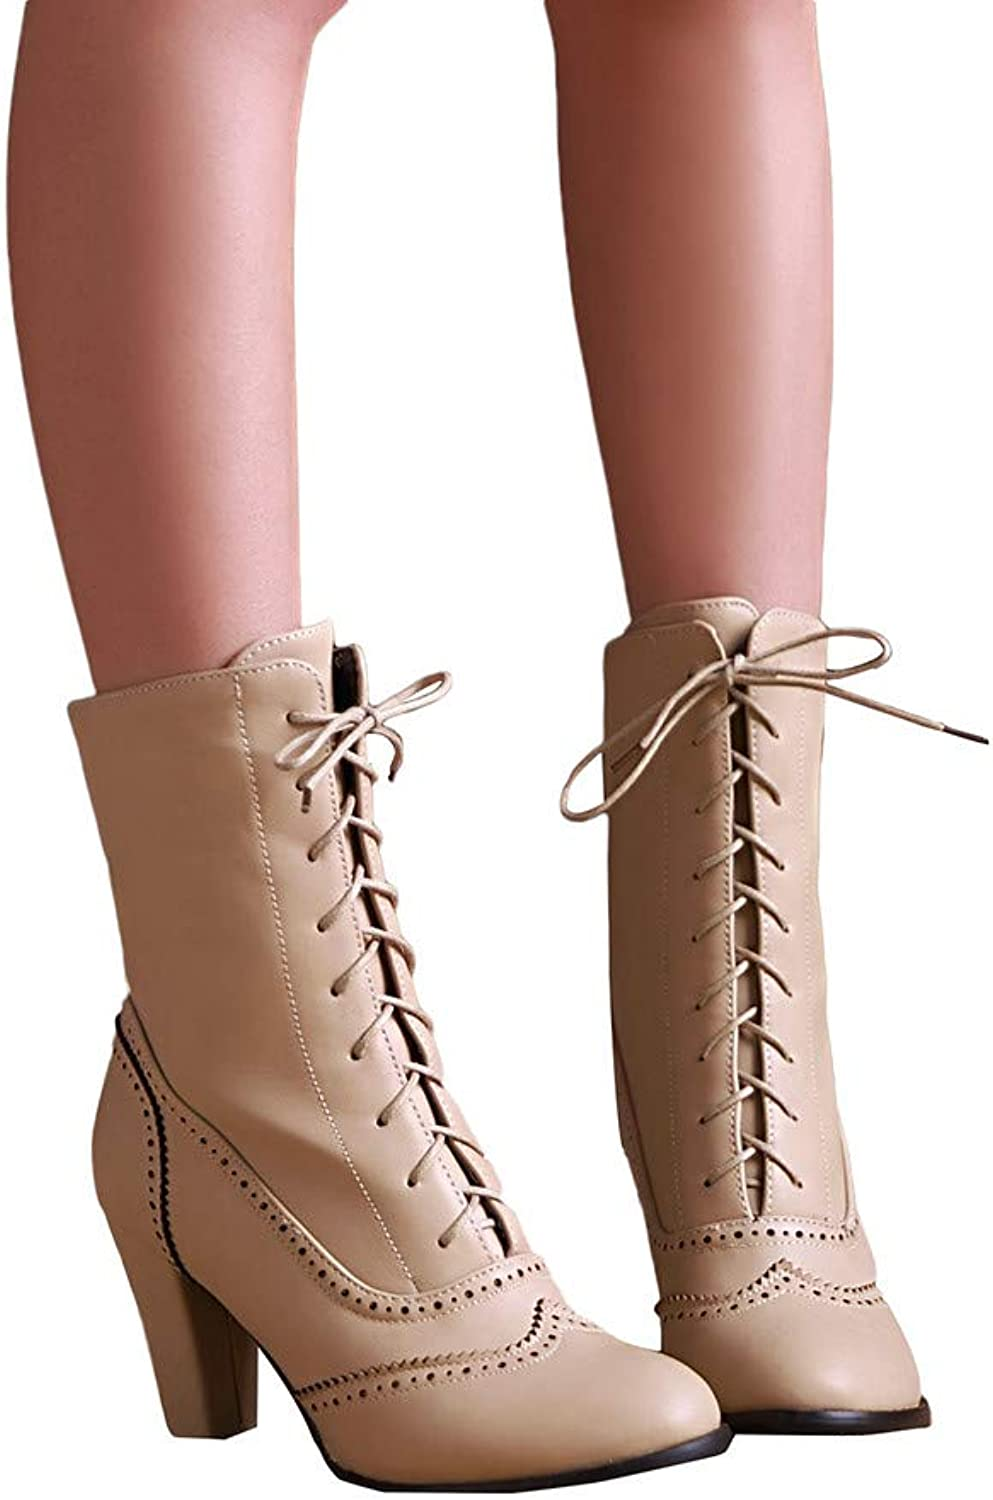 DongDong Seasonal OffersWomen's Classic Pointed Stacked Chunky Ankle Booties - Leather Lace-Up High-Heeled Martin Boots